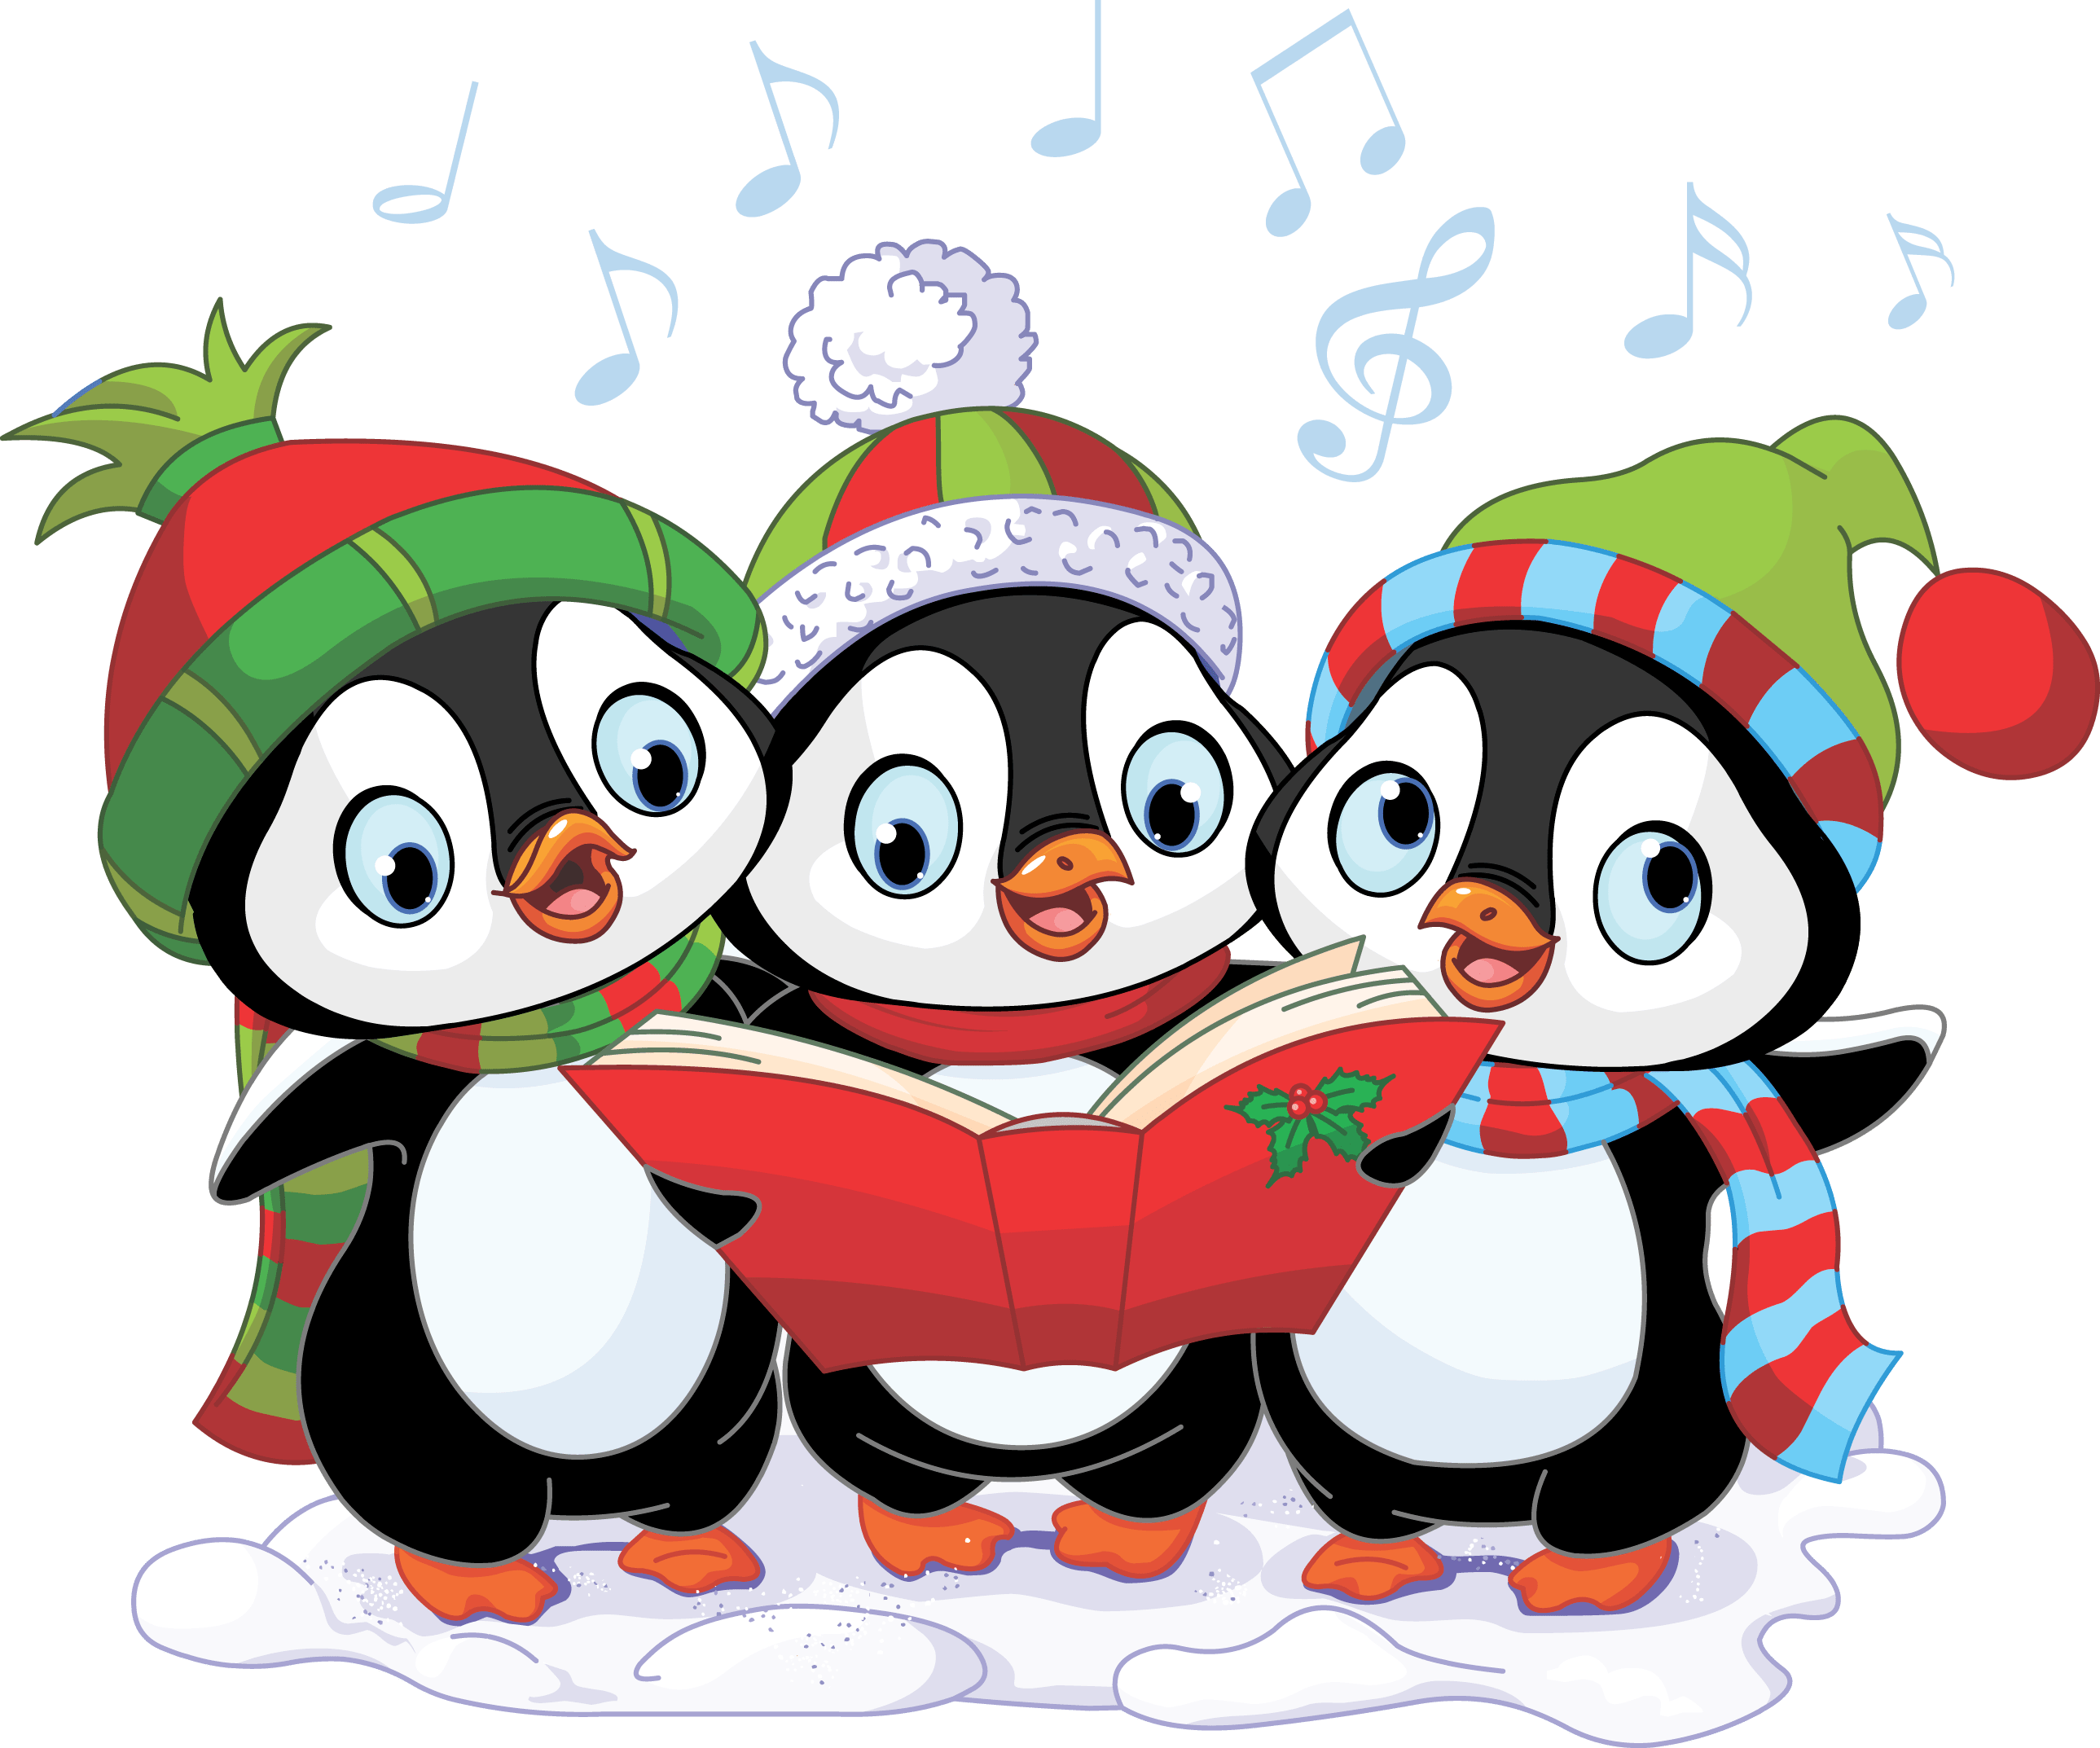 Caroling clipart concert. Here we come a